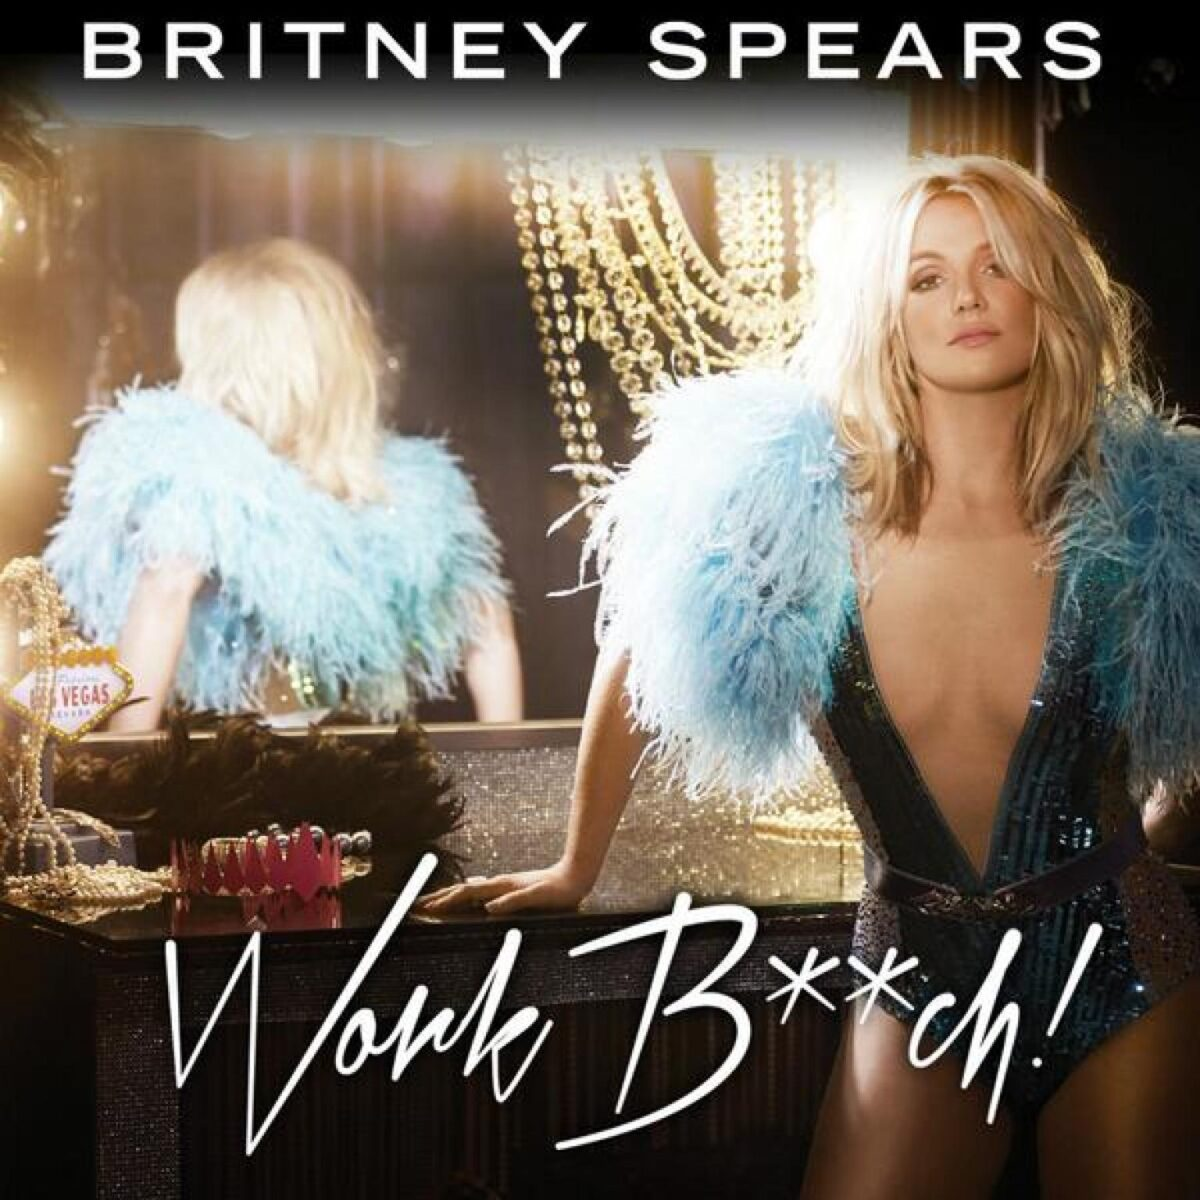 o-BRITNEY-SPEARS-WORK-BITCH-ARTWORK-facebook-1